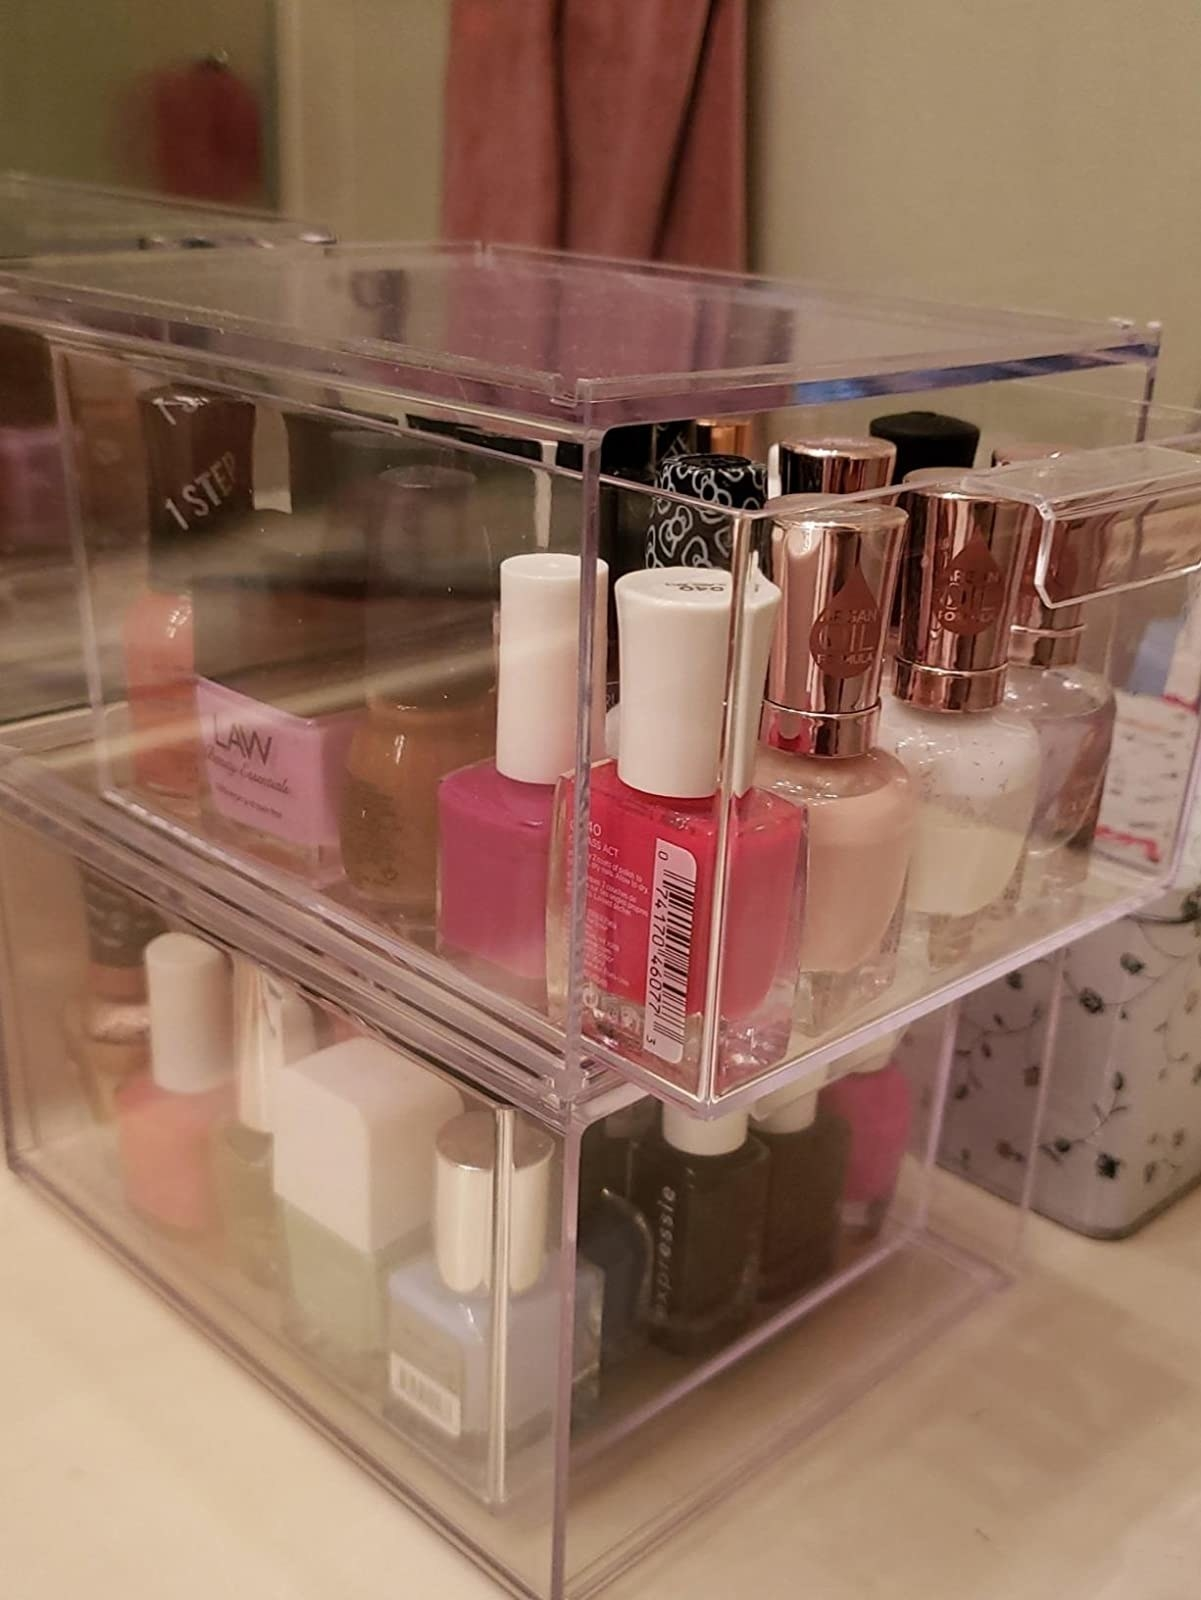 the boxes filled with nail polishes